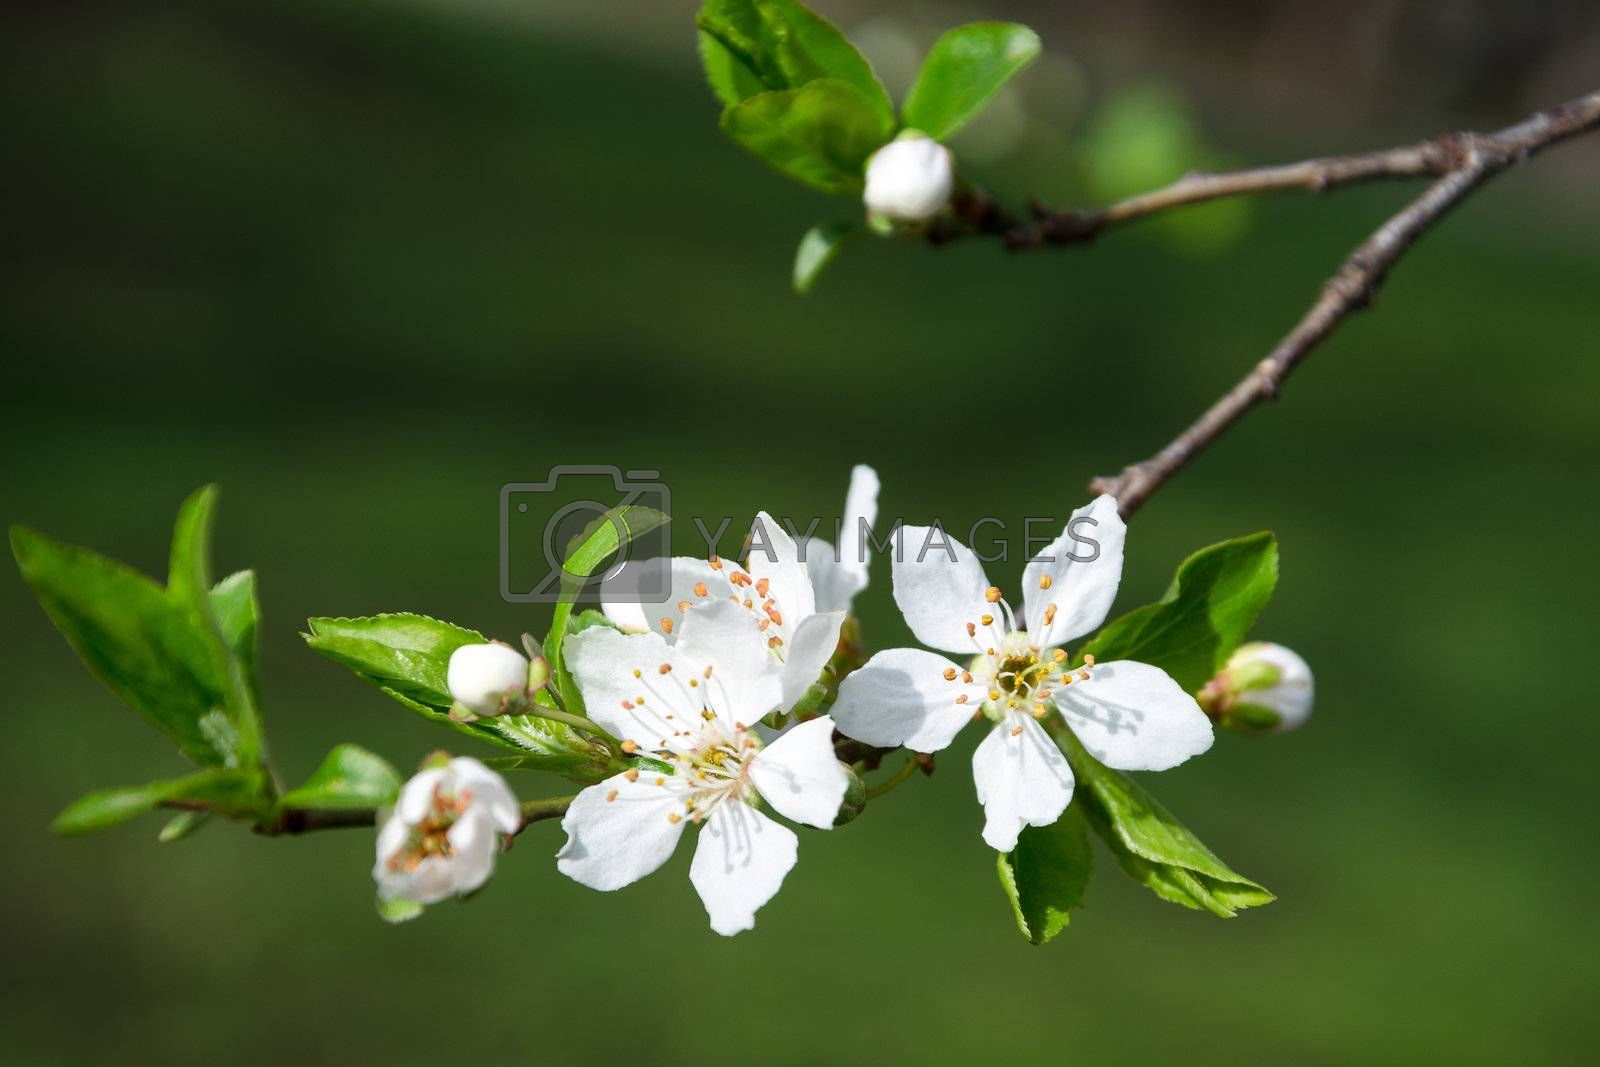 Branch of white blooming buds on a dark background